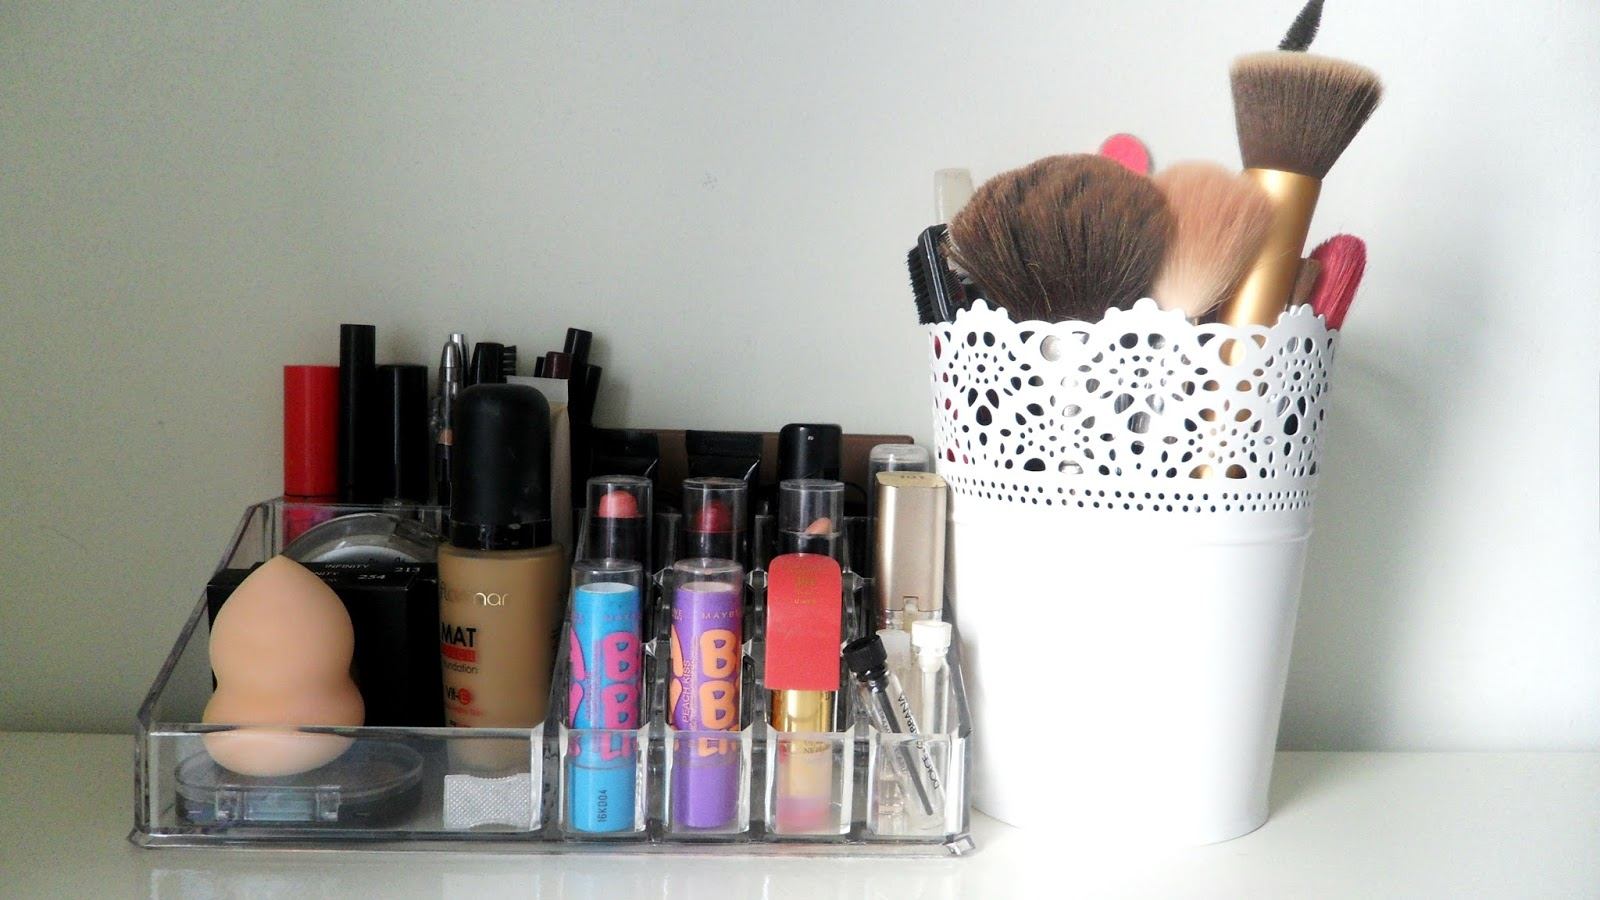 My Makeup Collection + Storage